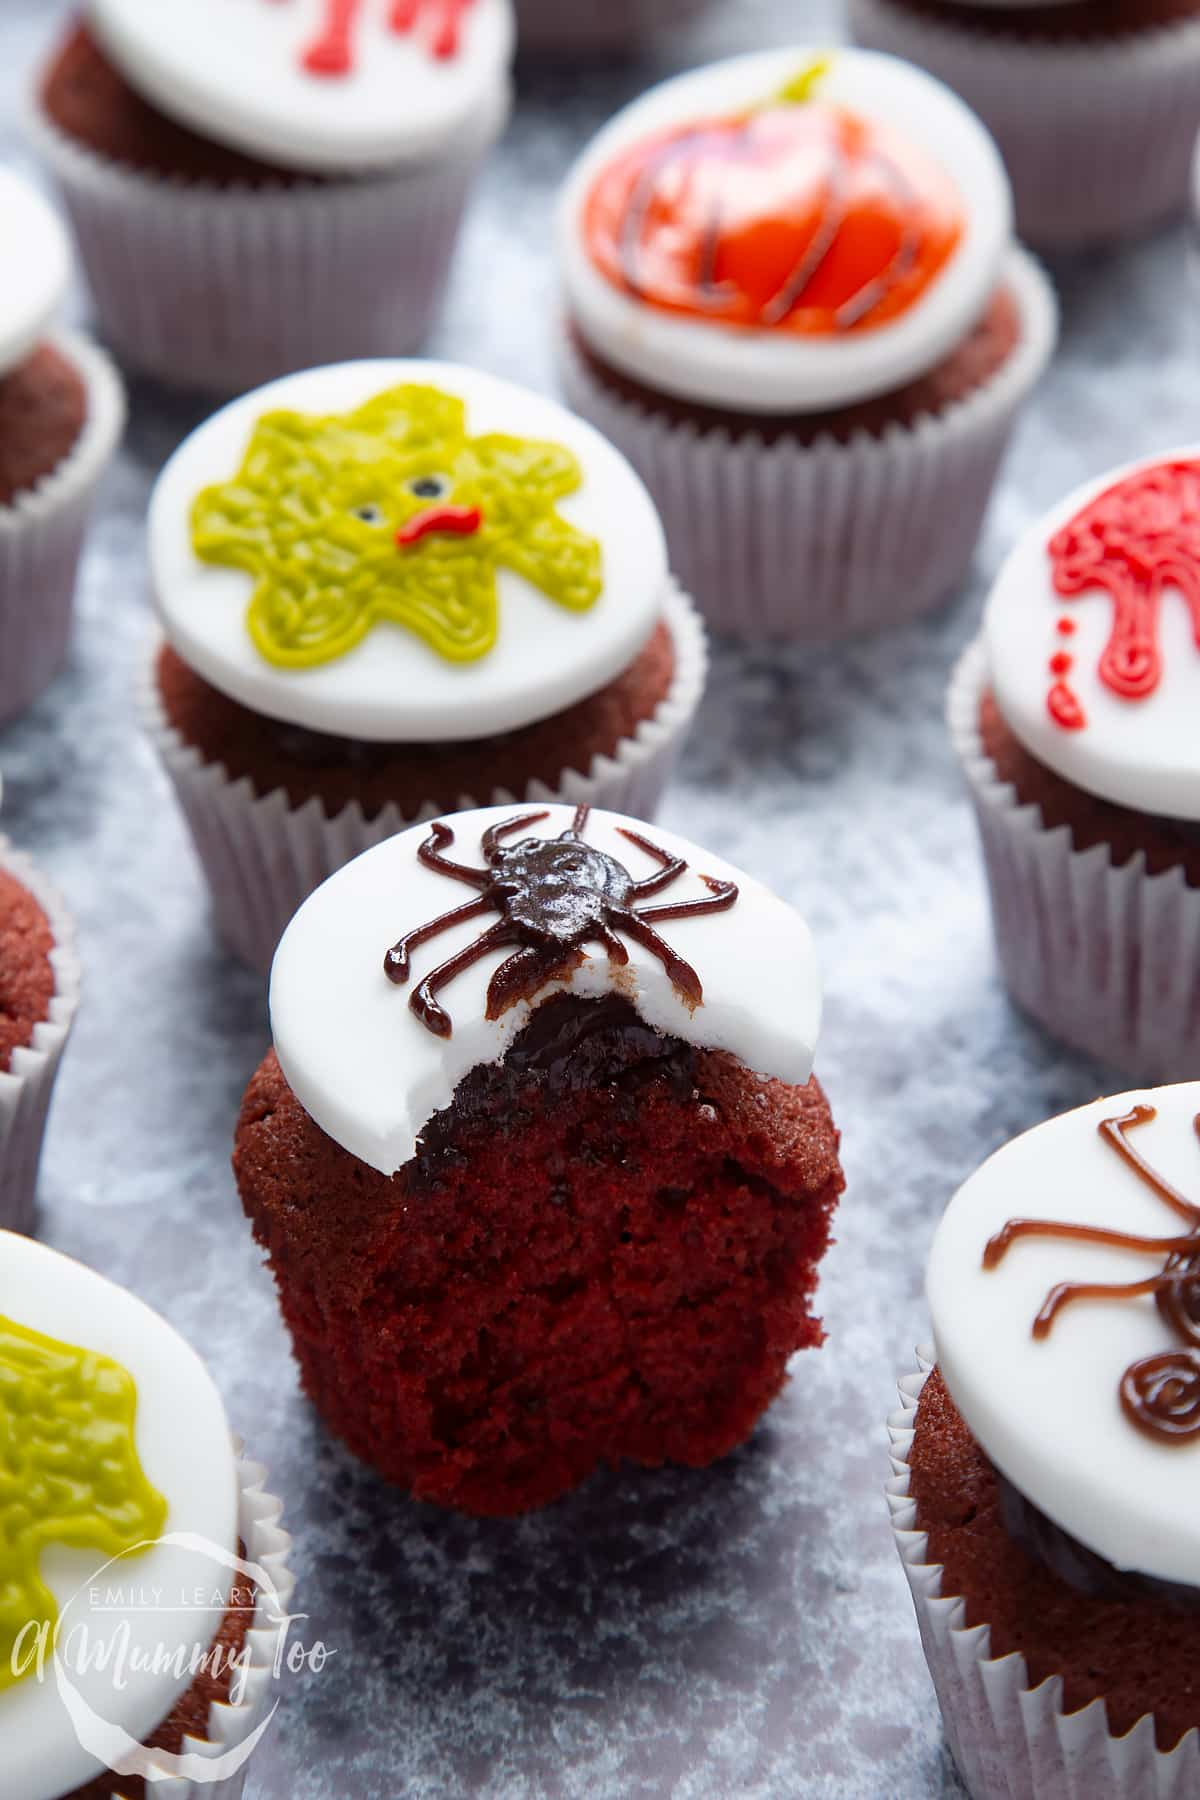 Dairy free Halloween cupcakes: red velvet cupcakes topped with chocolate frosting and white fondant discs decorated with icing pens. The cupcake in the foreground has a spider design with a bite out of it.